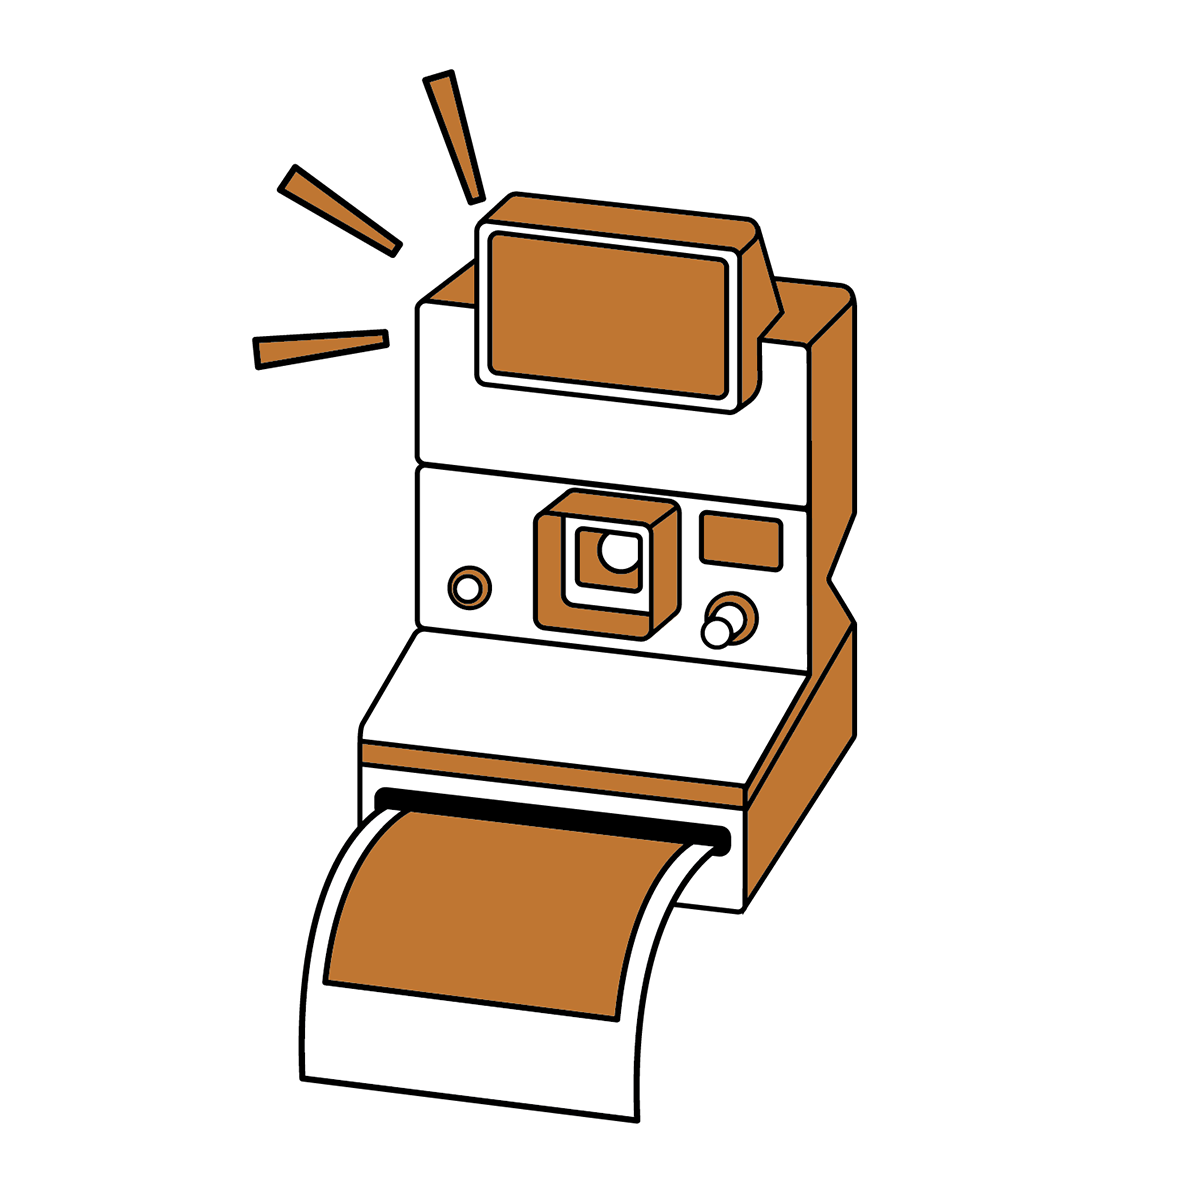 Tamiya RC Bil, tamiya-58672-monster-beetle-trail-gf-01-tr-chassis-scale-1-14, TAM58672